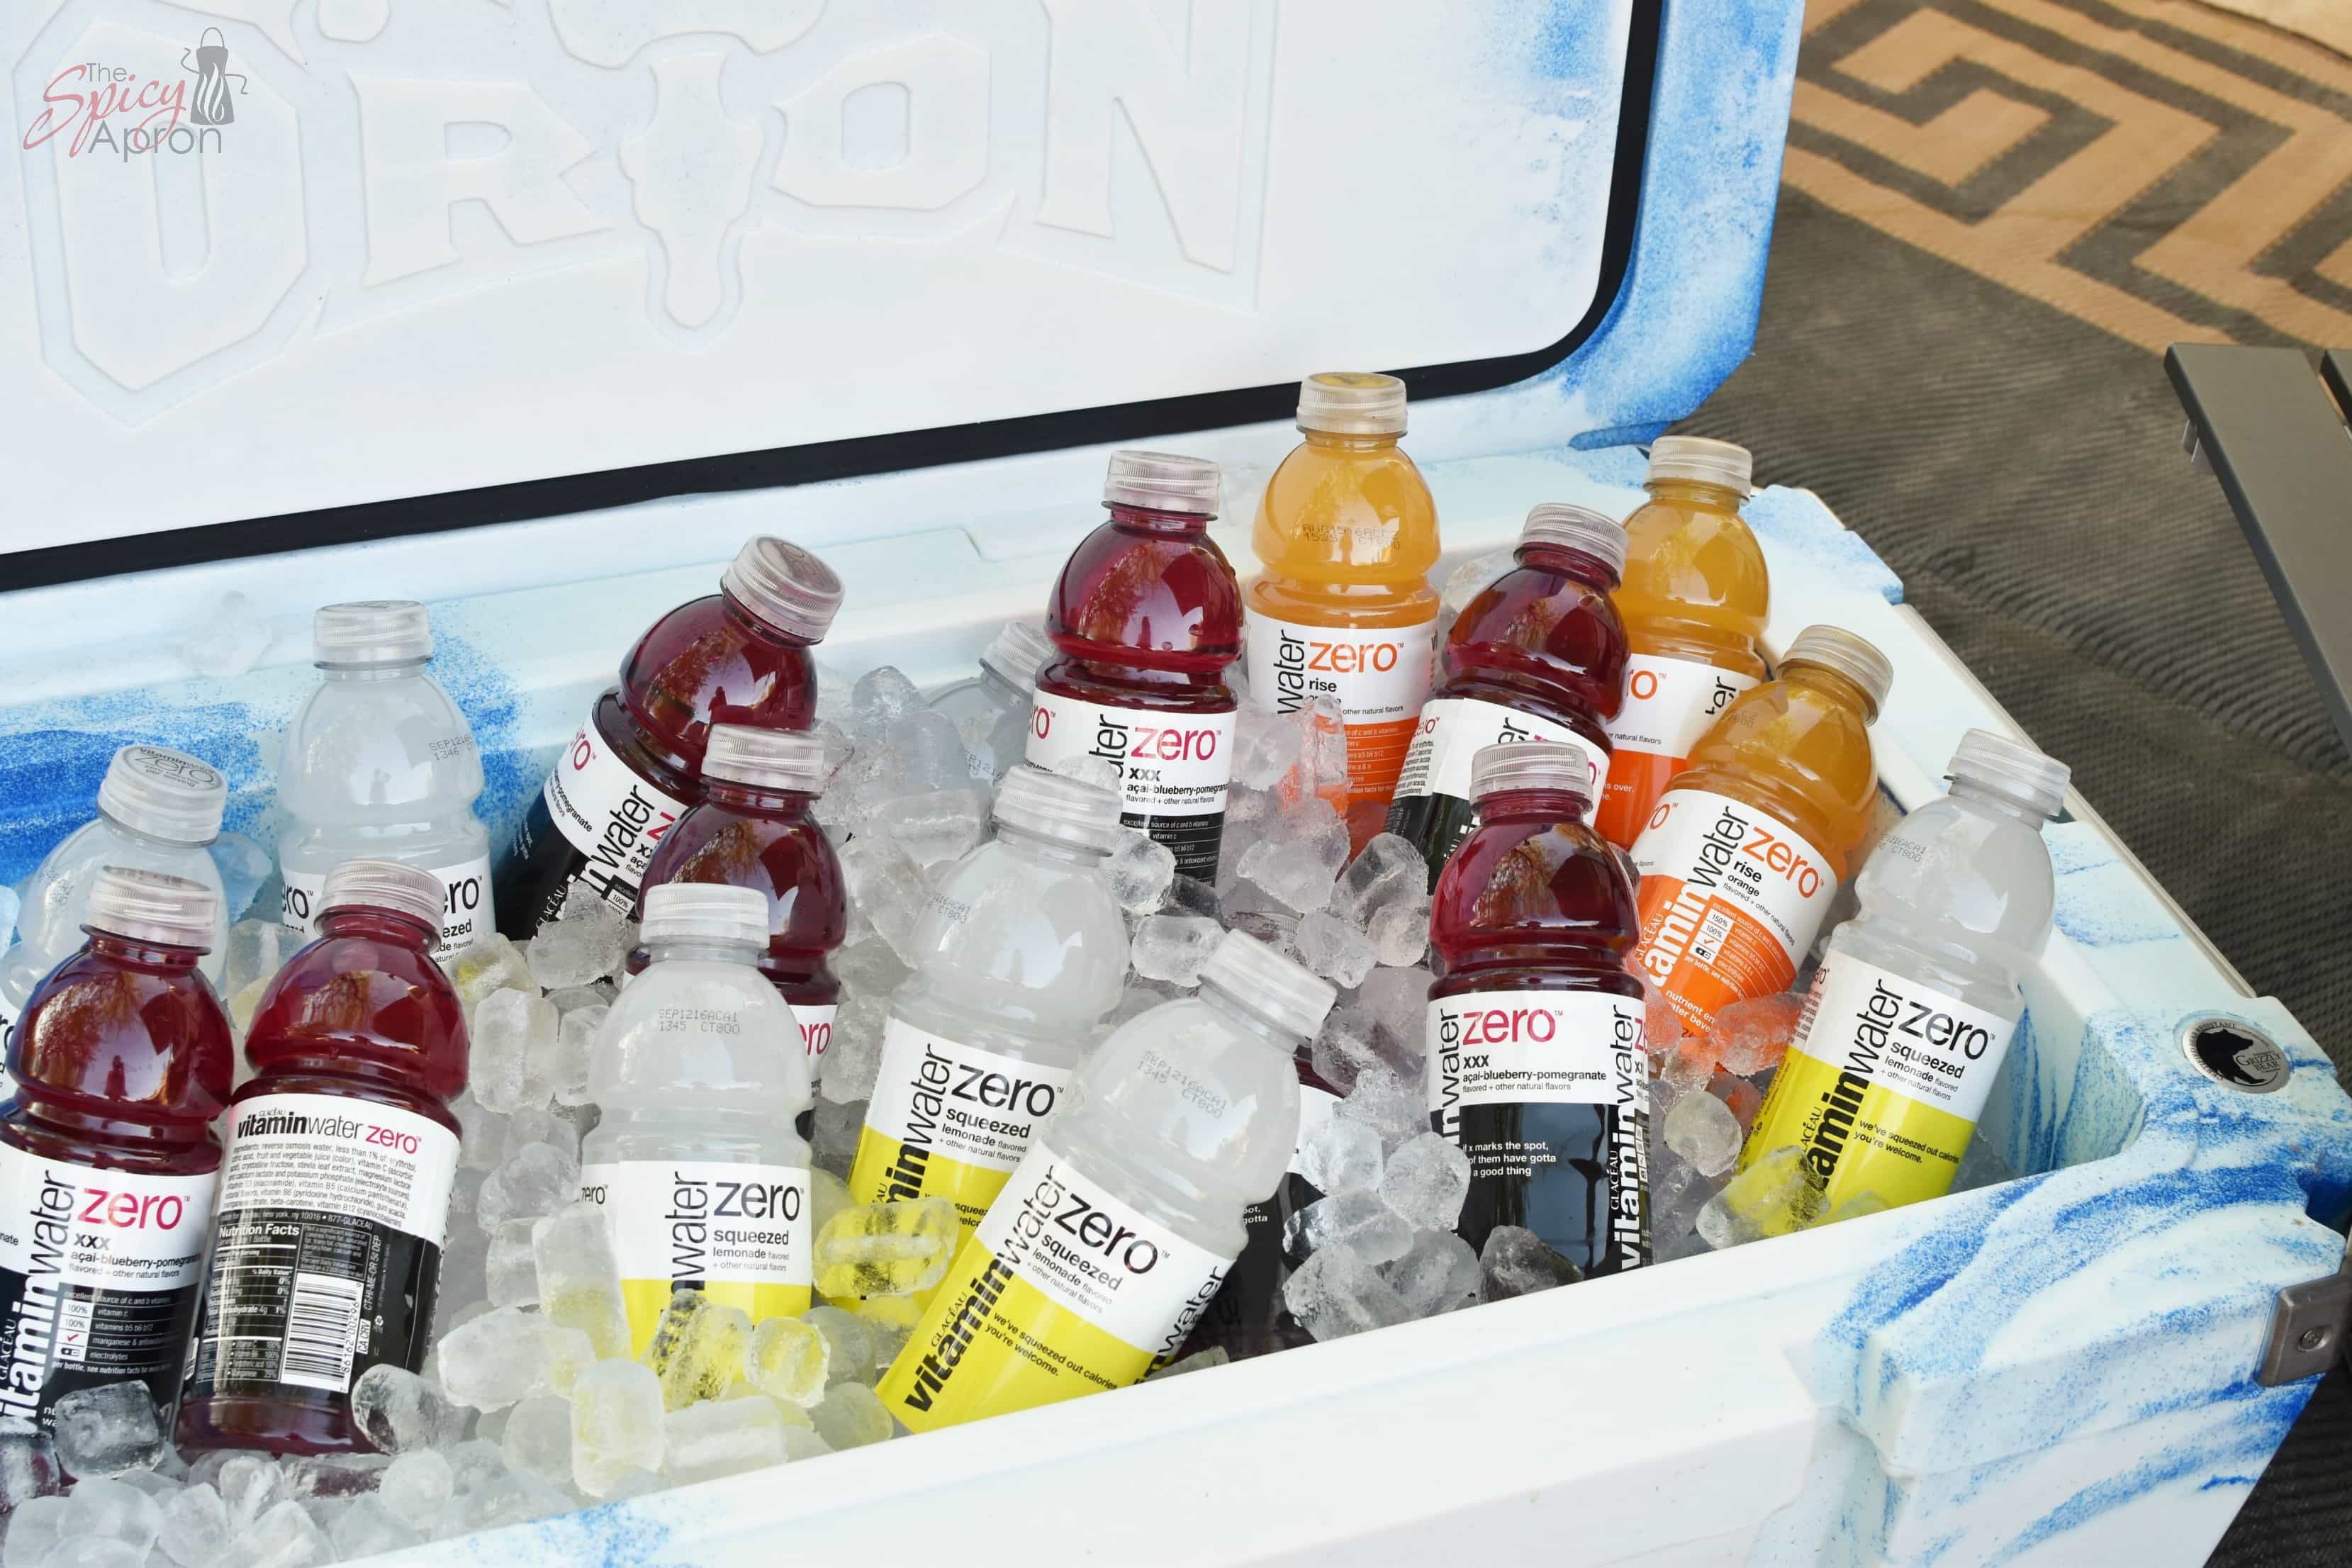 Staying Hydrated Cooler Shot vitaminwaterZero with watermark